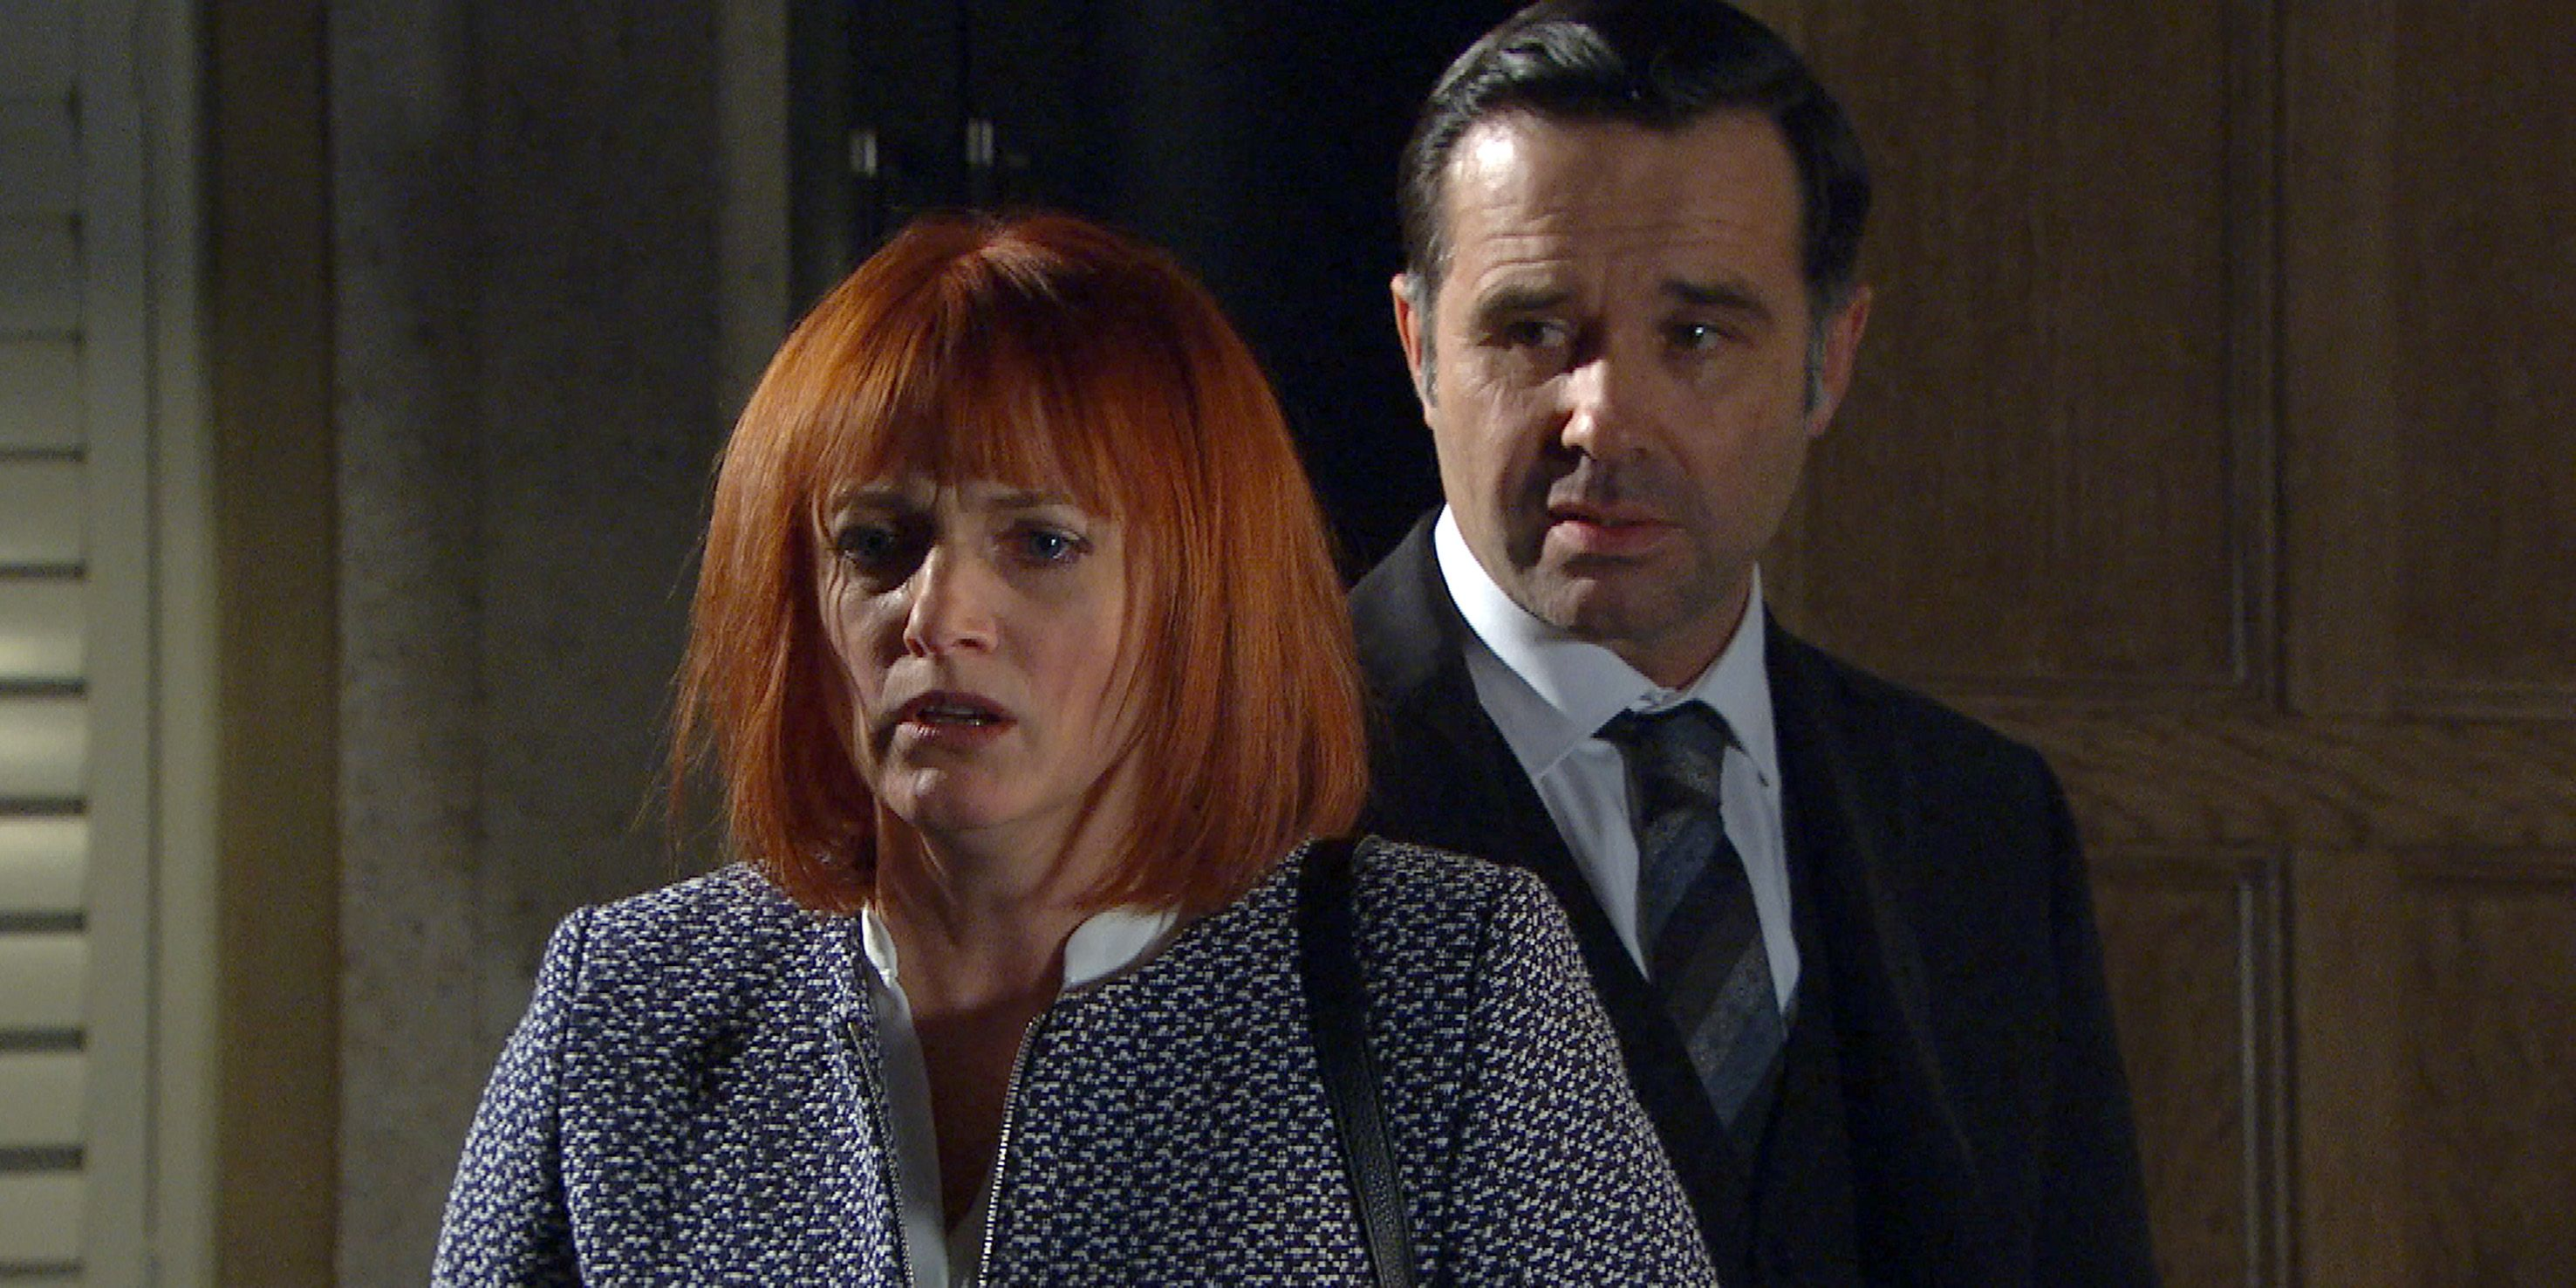 Nicola King realises Graham Foster knows the truth in Emmerdale